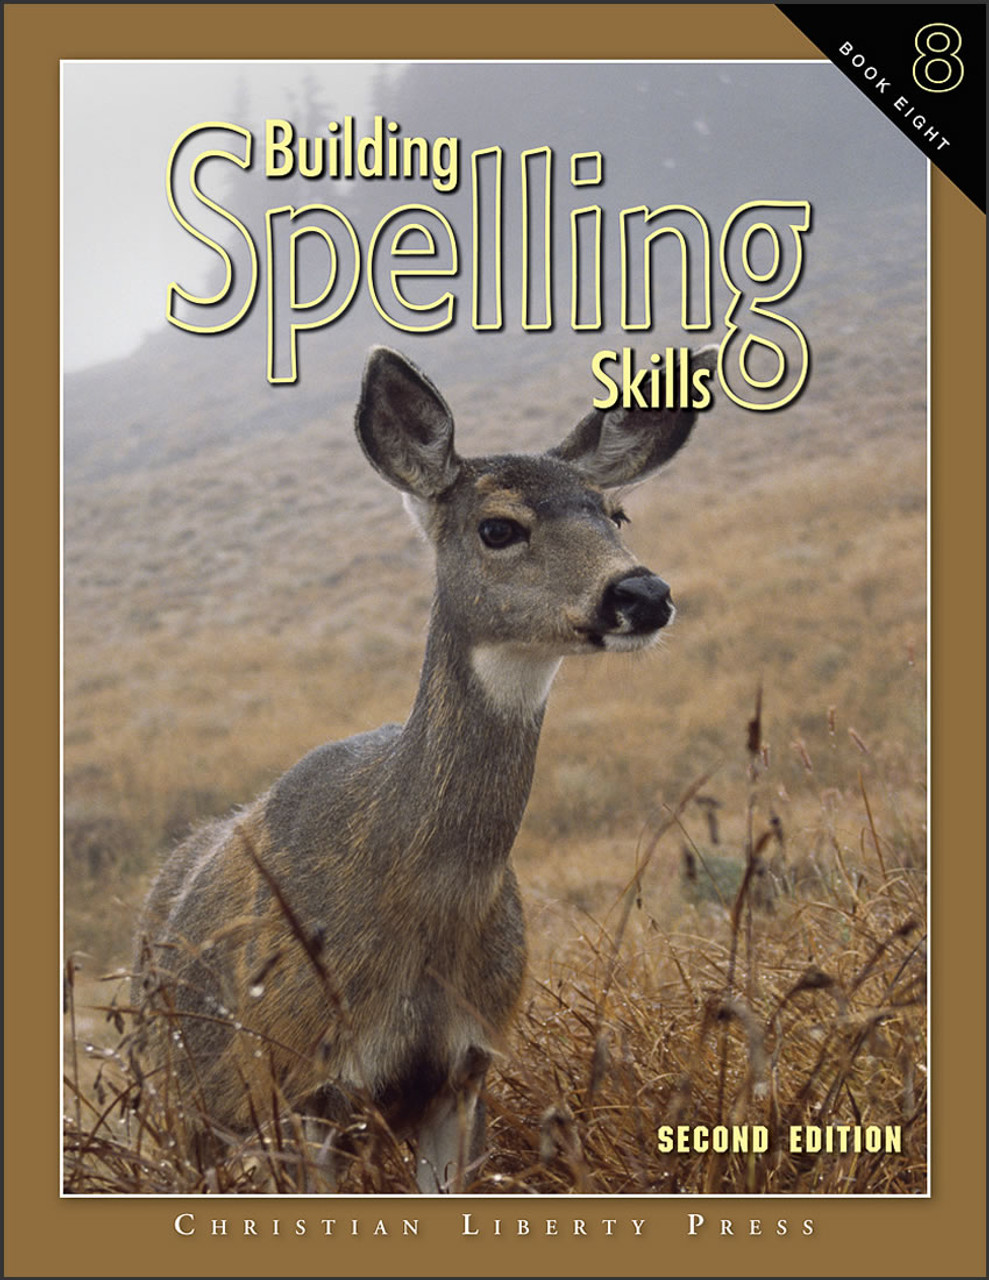 Building Spelling Skills 8, 2nd edition